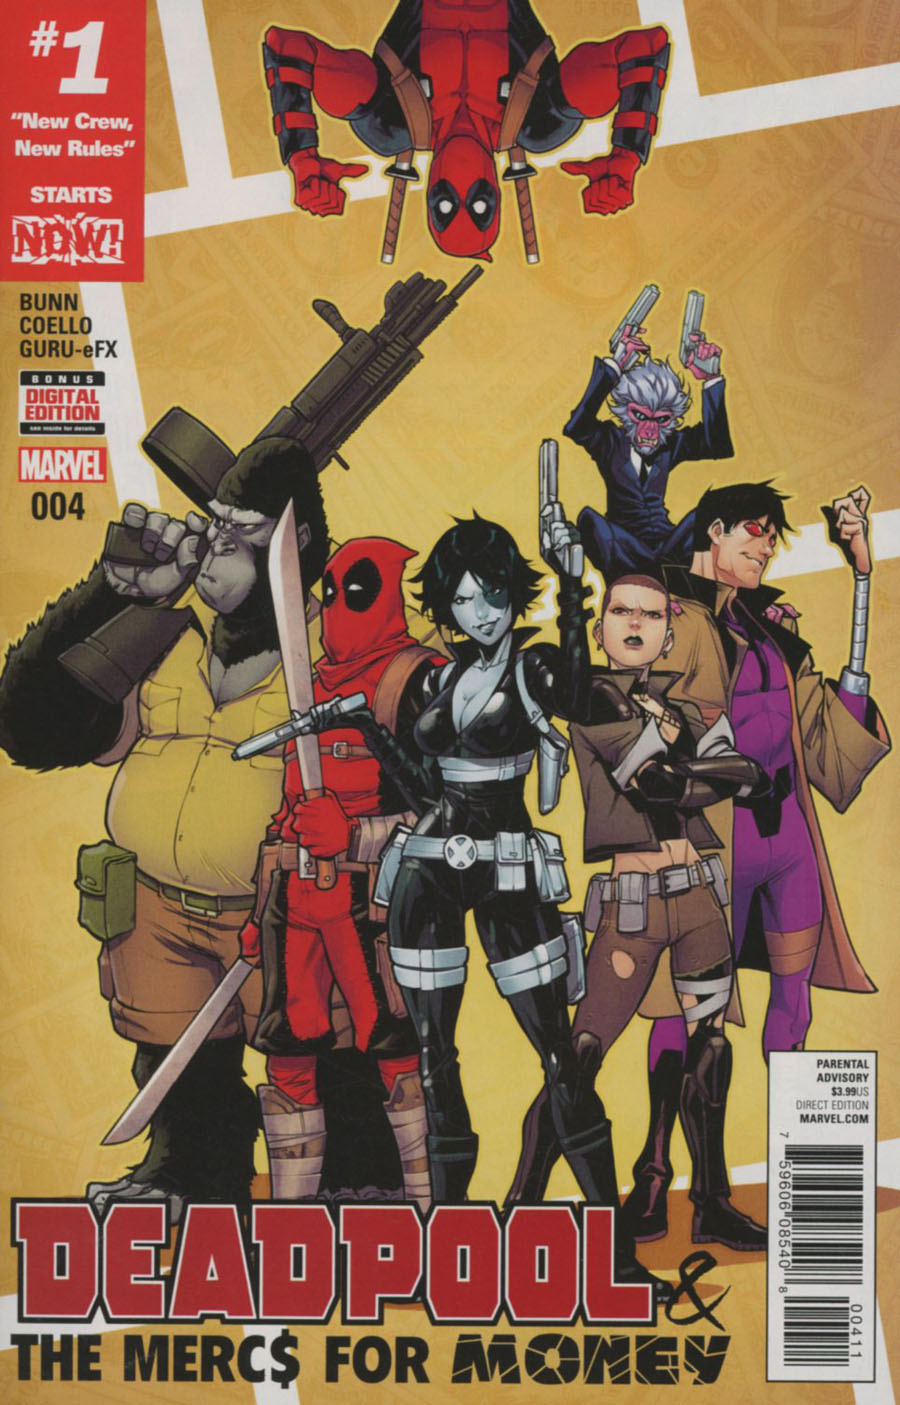 Deadpool And The Mercs For Money Vol 2 #4 Cover A Regular Iban Coello Cover (Marvel Now Tie-In)